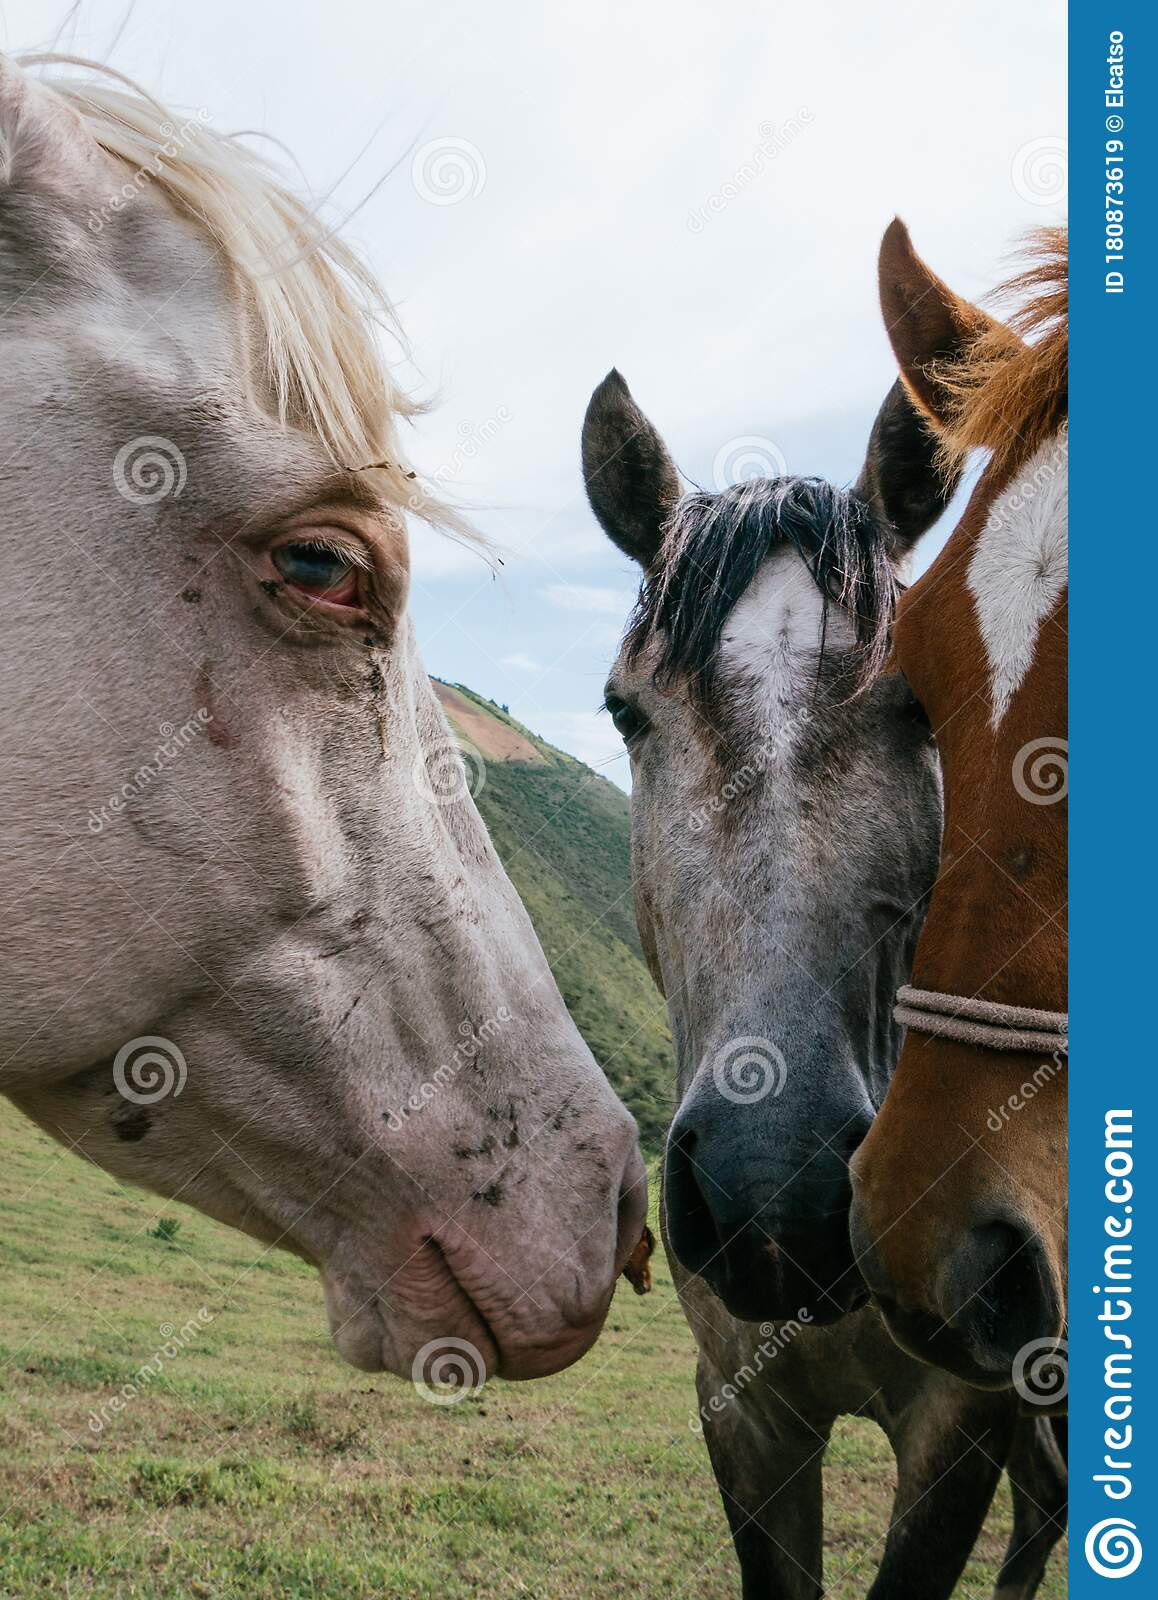 902 Beautiful Horse Heads Photos Free Royalty Free Stock Photos From Dreamstime